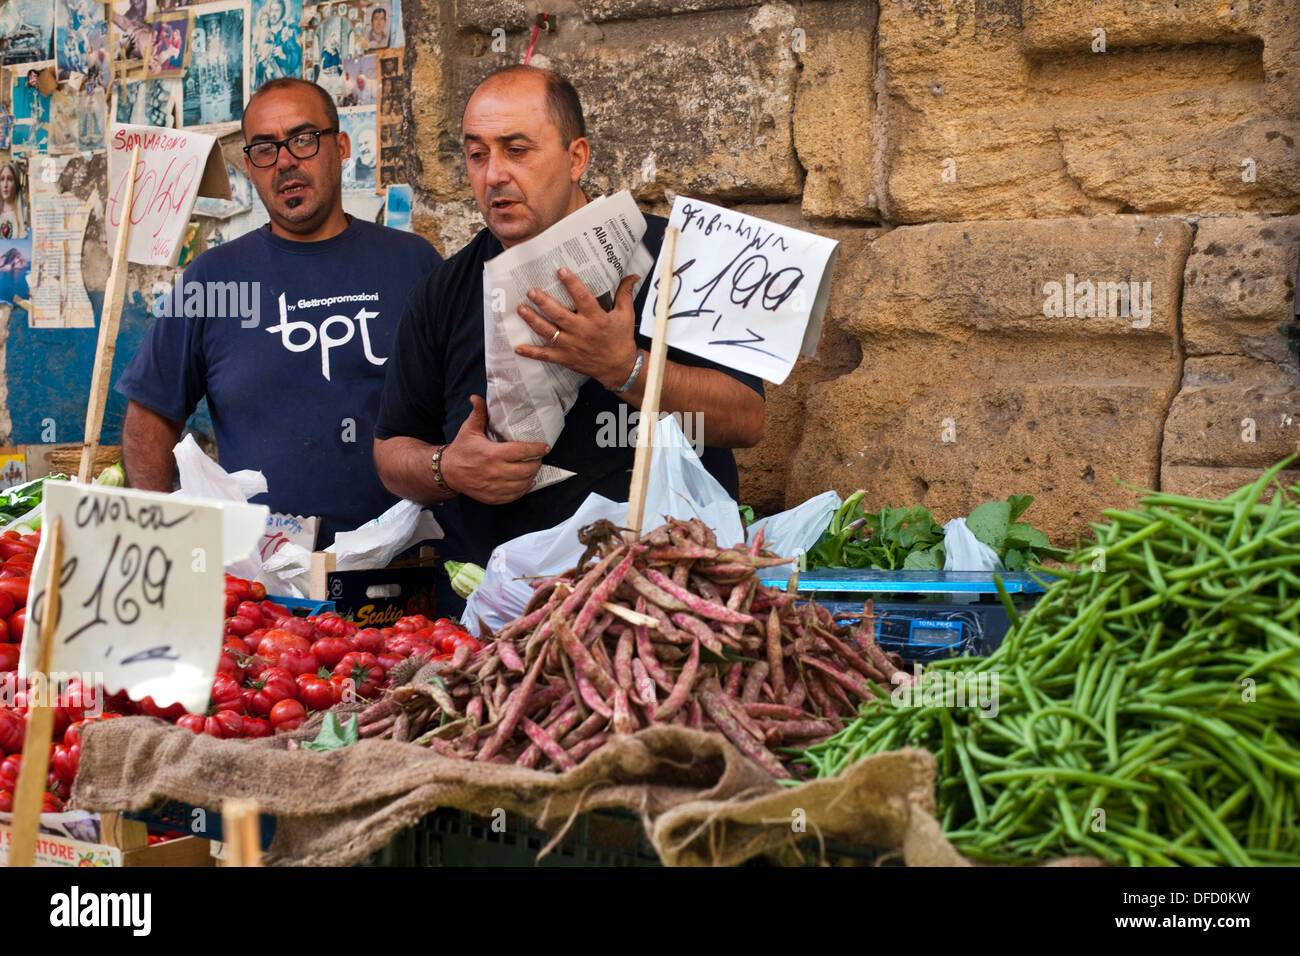 Market traders on their stall in the Capo Market, Palermo, Italy - Stock Image